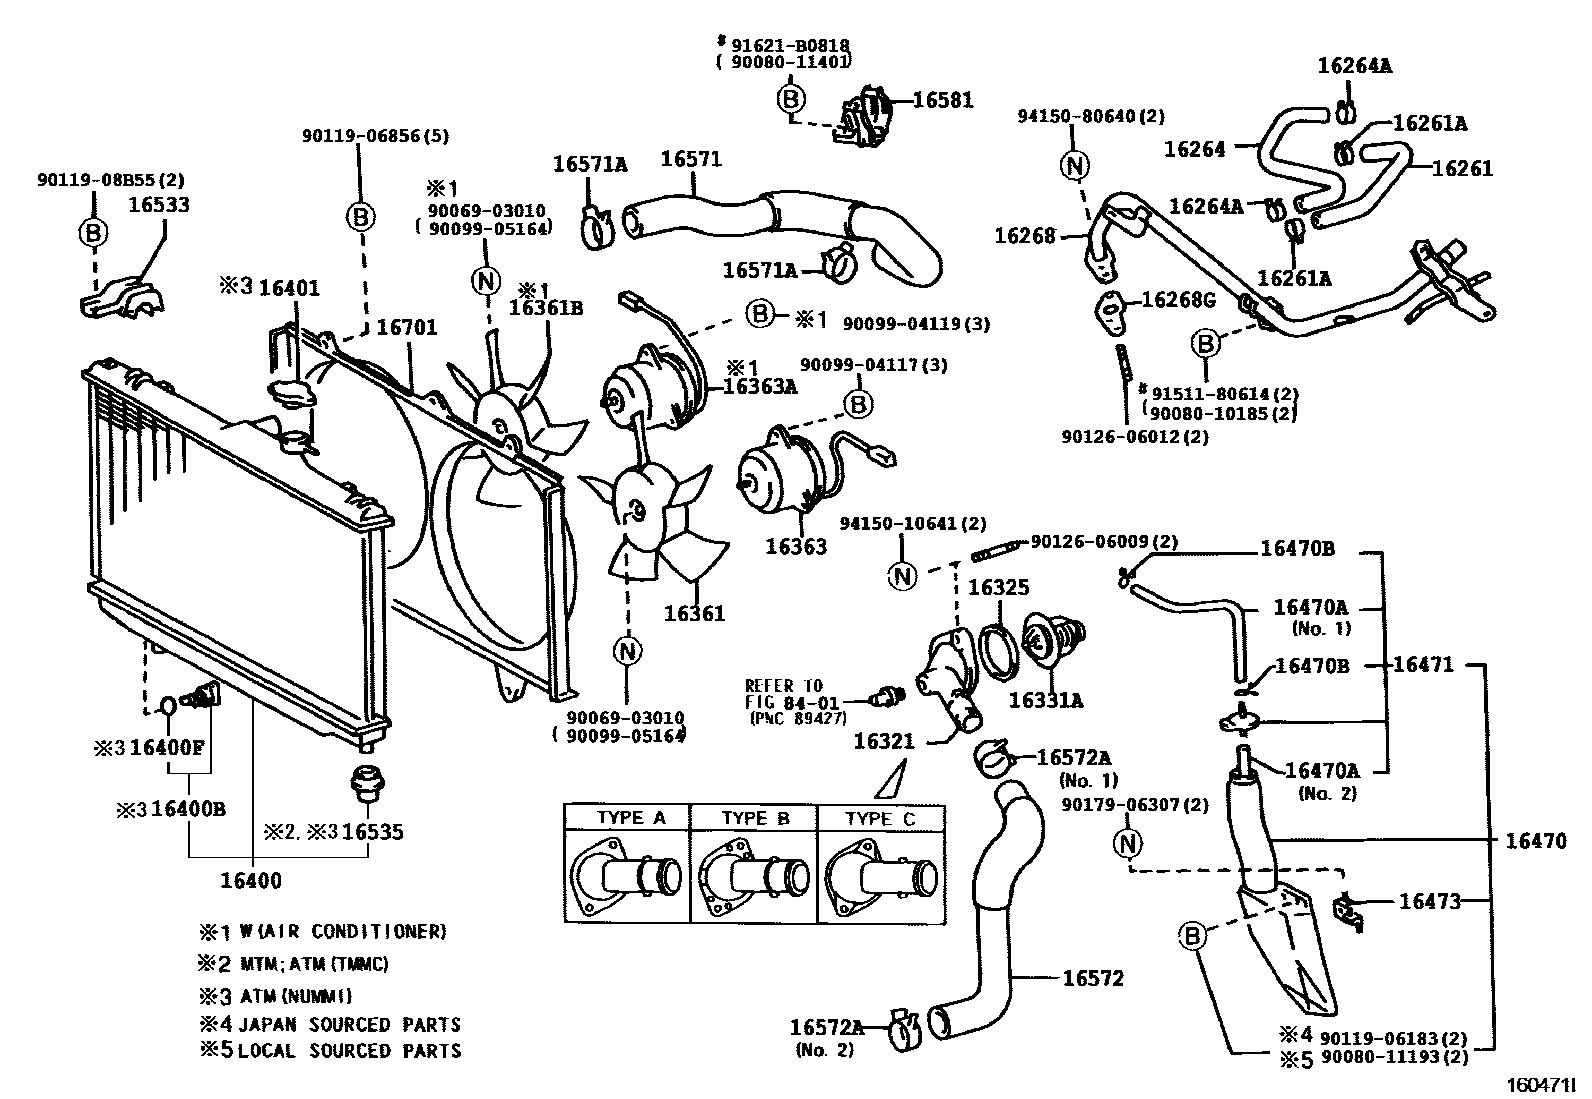 Toyota Corolla Timing Chain Diagram moreover 2004 Toyota Matrix Fuse Box Diagram likewise Audi A4 V6 2 8 Engine Diagram besides Discussion D295 ds551889 furthermore Rav 4 Vacuum Diagram. on 1997 rav4 engine